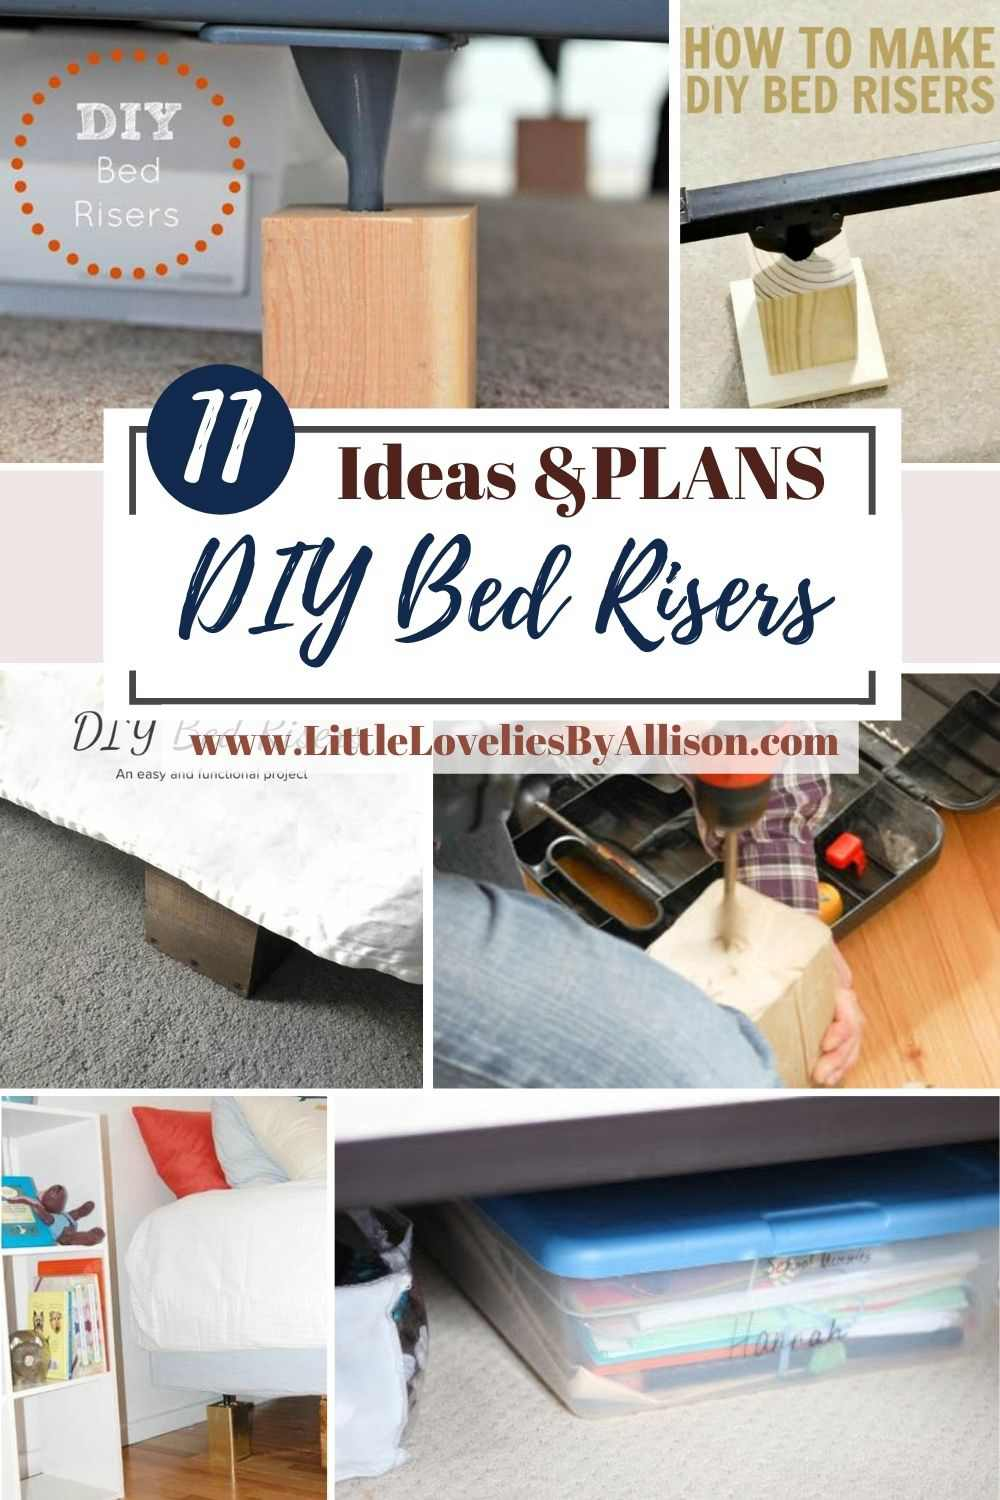 11 Convenient Diy Bed Risers For Easy Implemetation